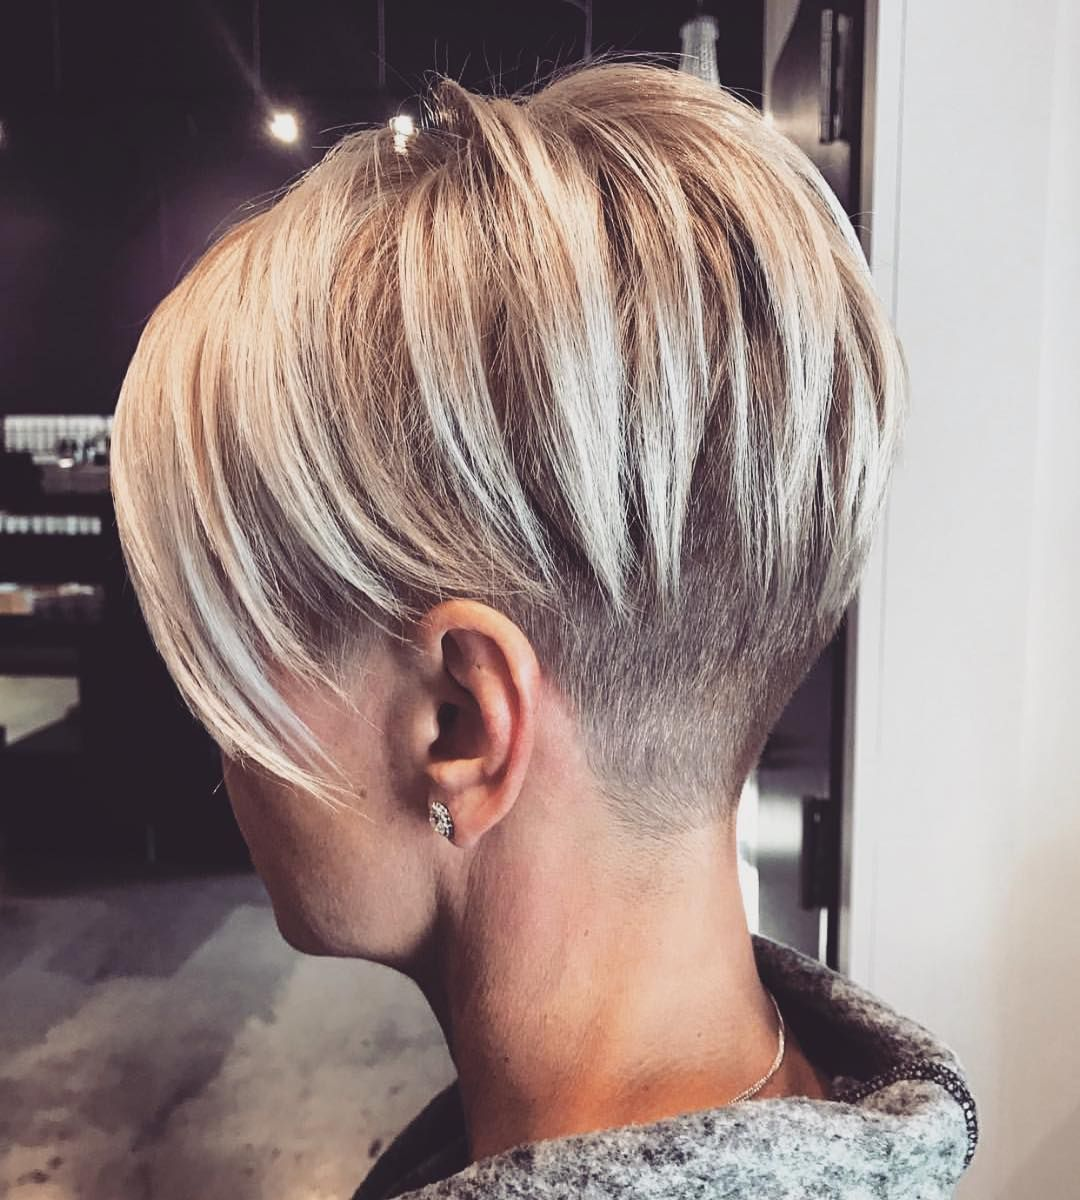 Shaved pixie haircuts stylish short haircut for women pixie